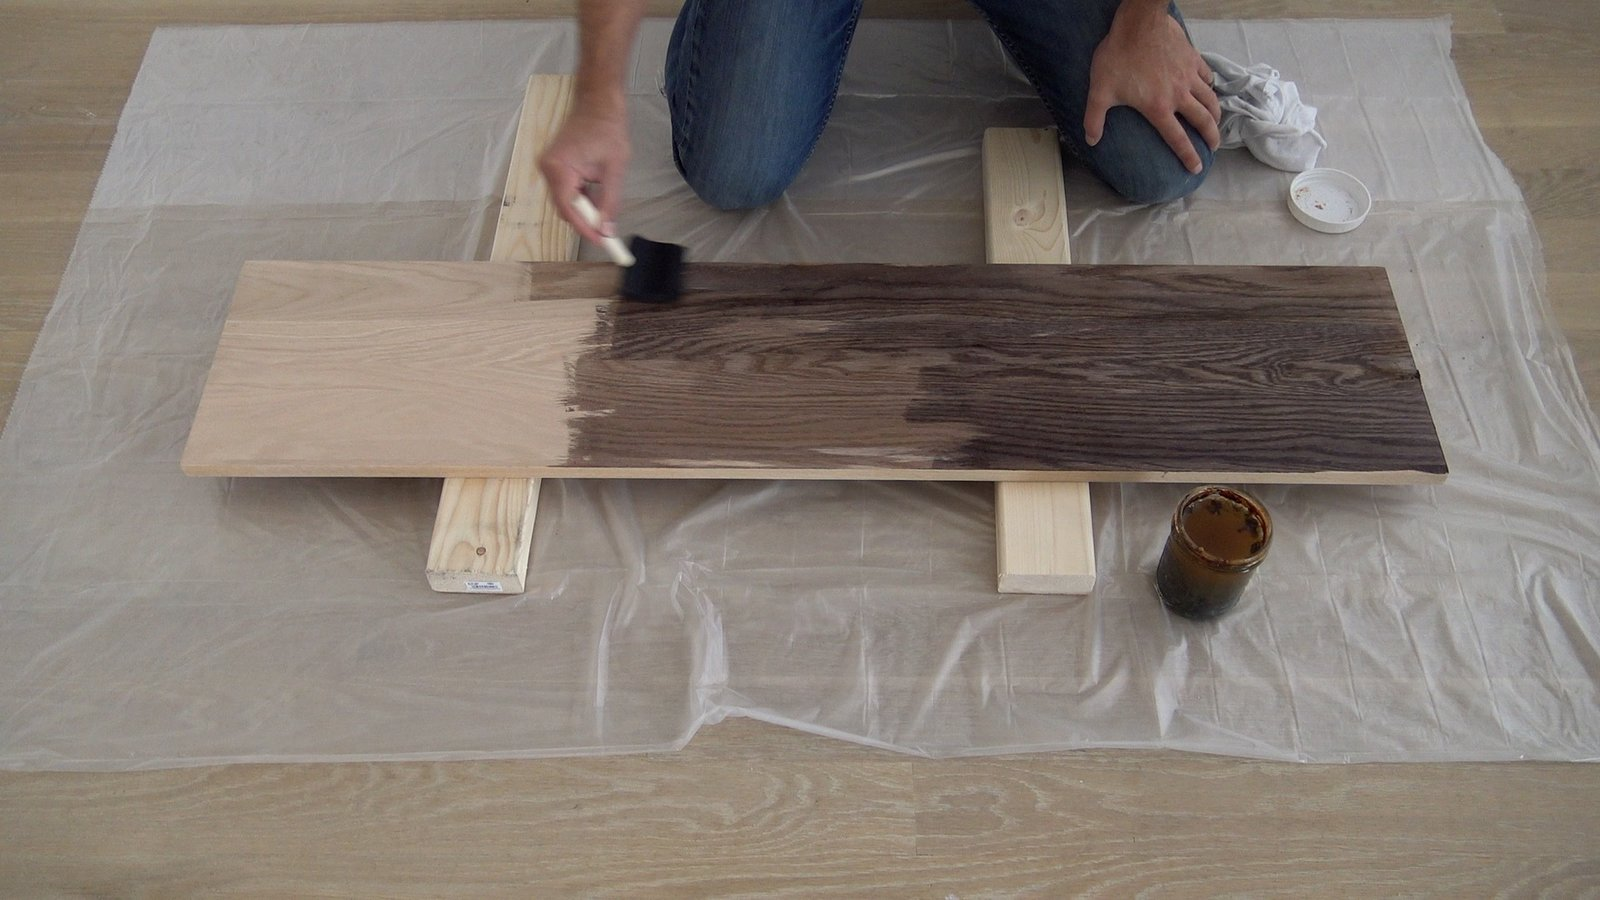 Photo 5 of 10 in Dwell Made Presents: DIY Black Oak Bench